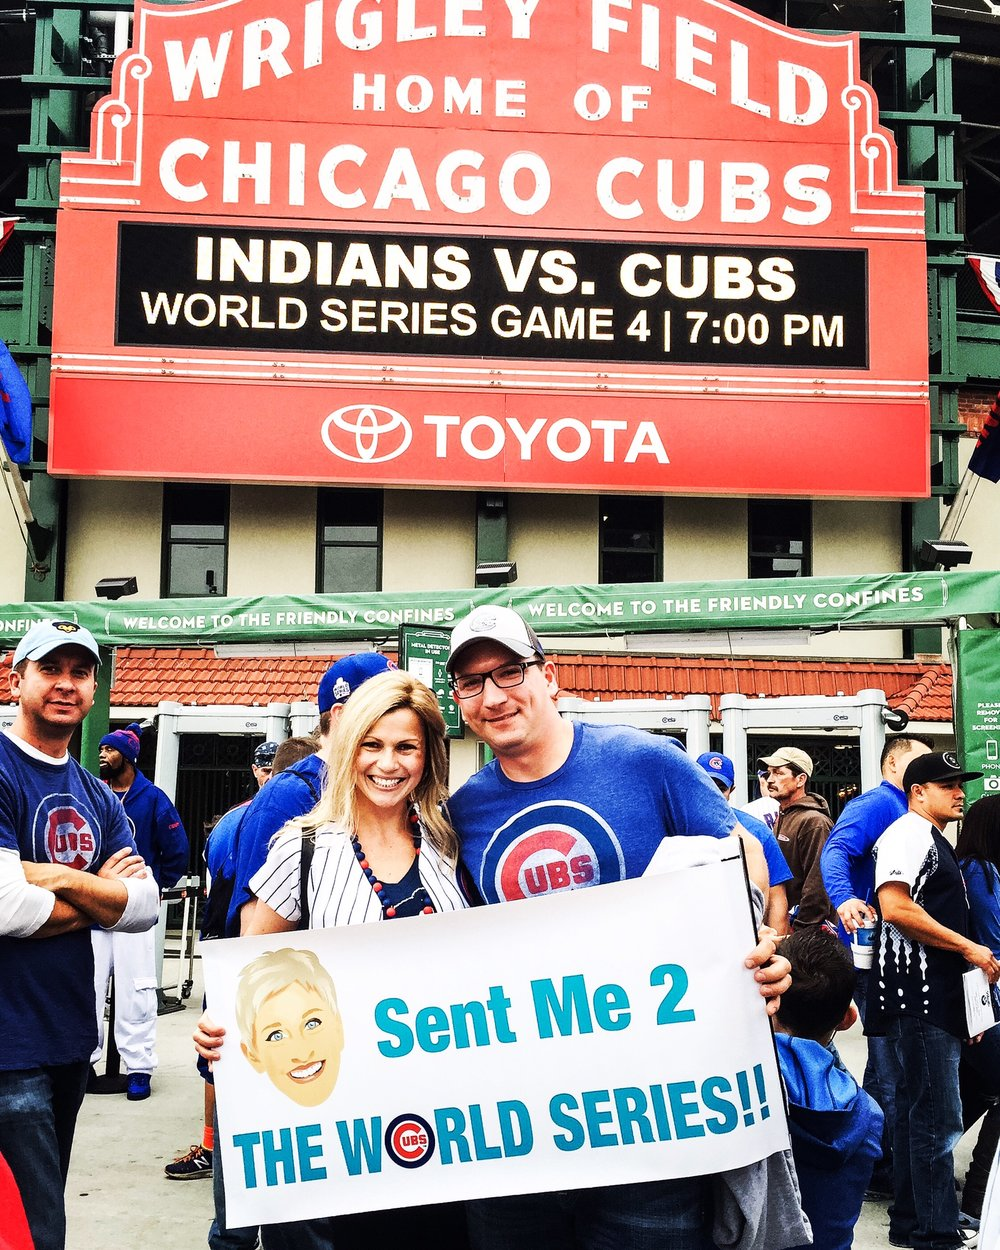 Winning Tickets to the World Series